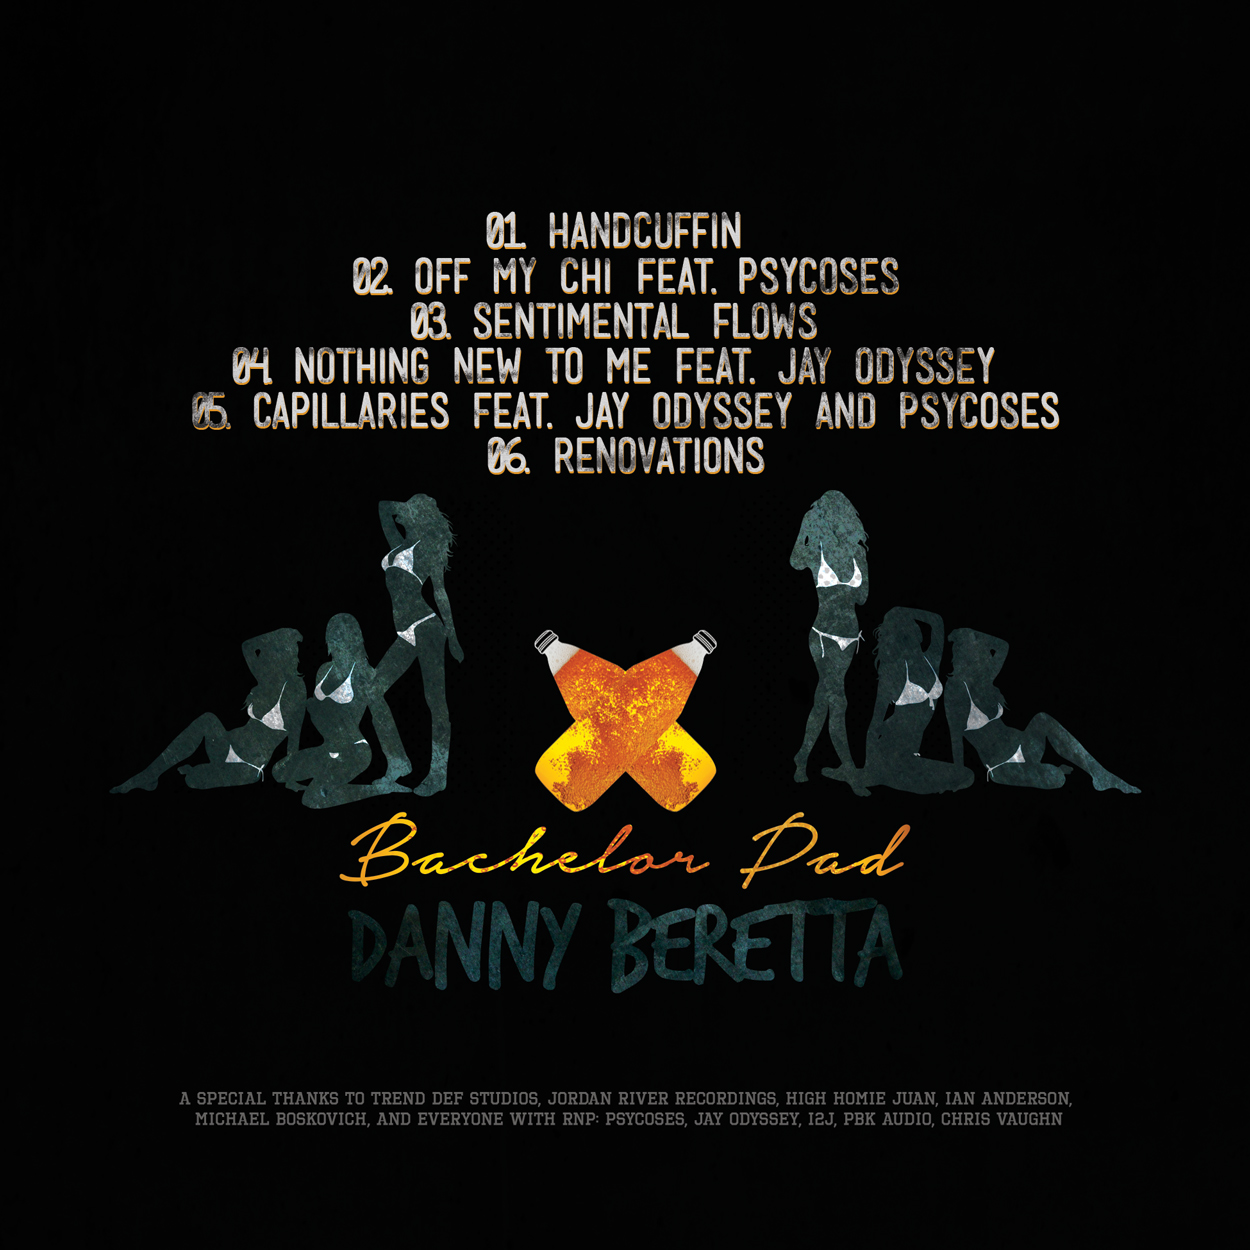 danny beretta - bachelor pad - album art design